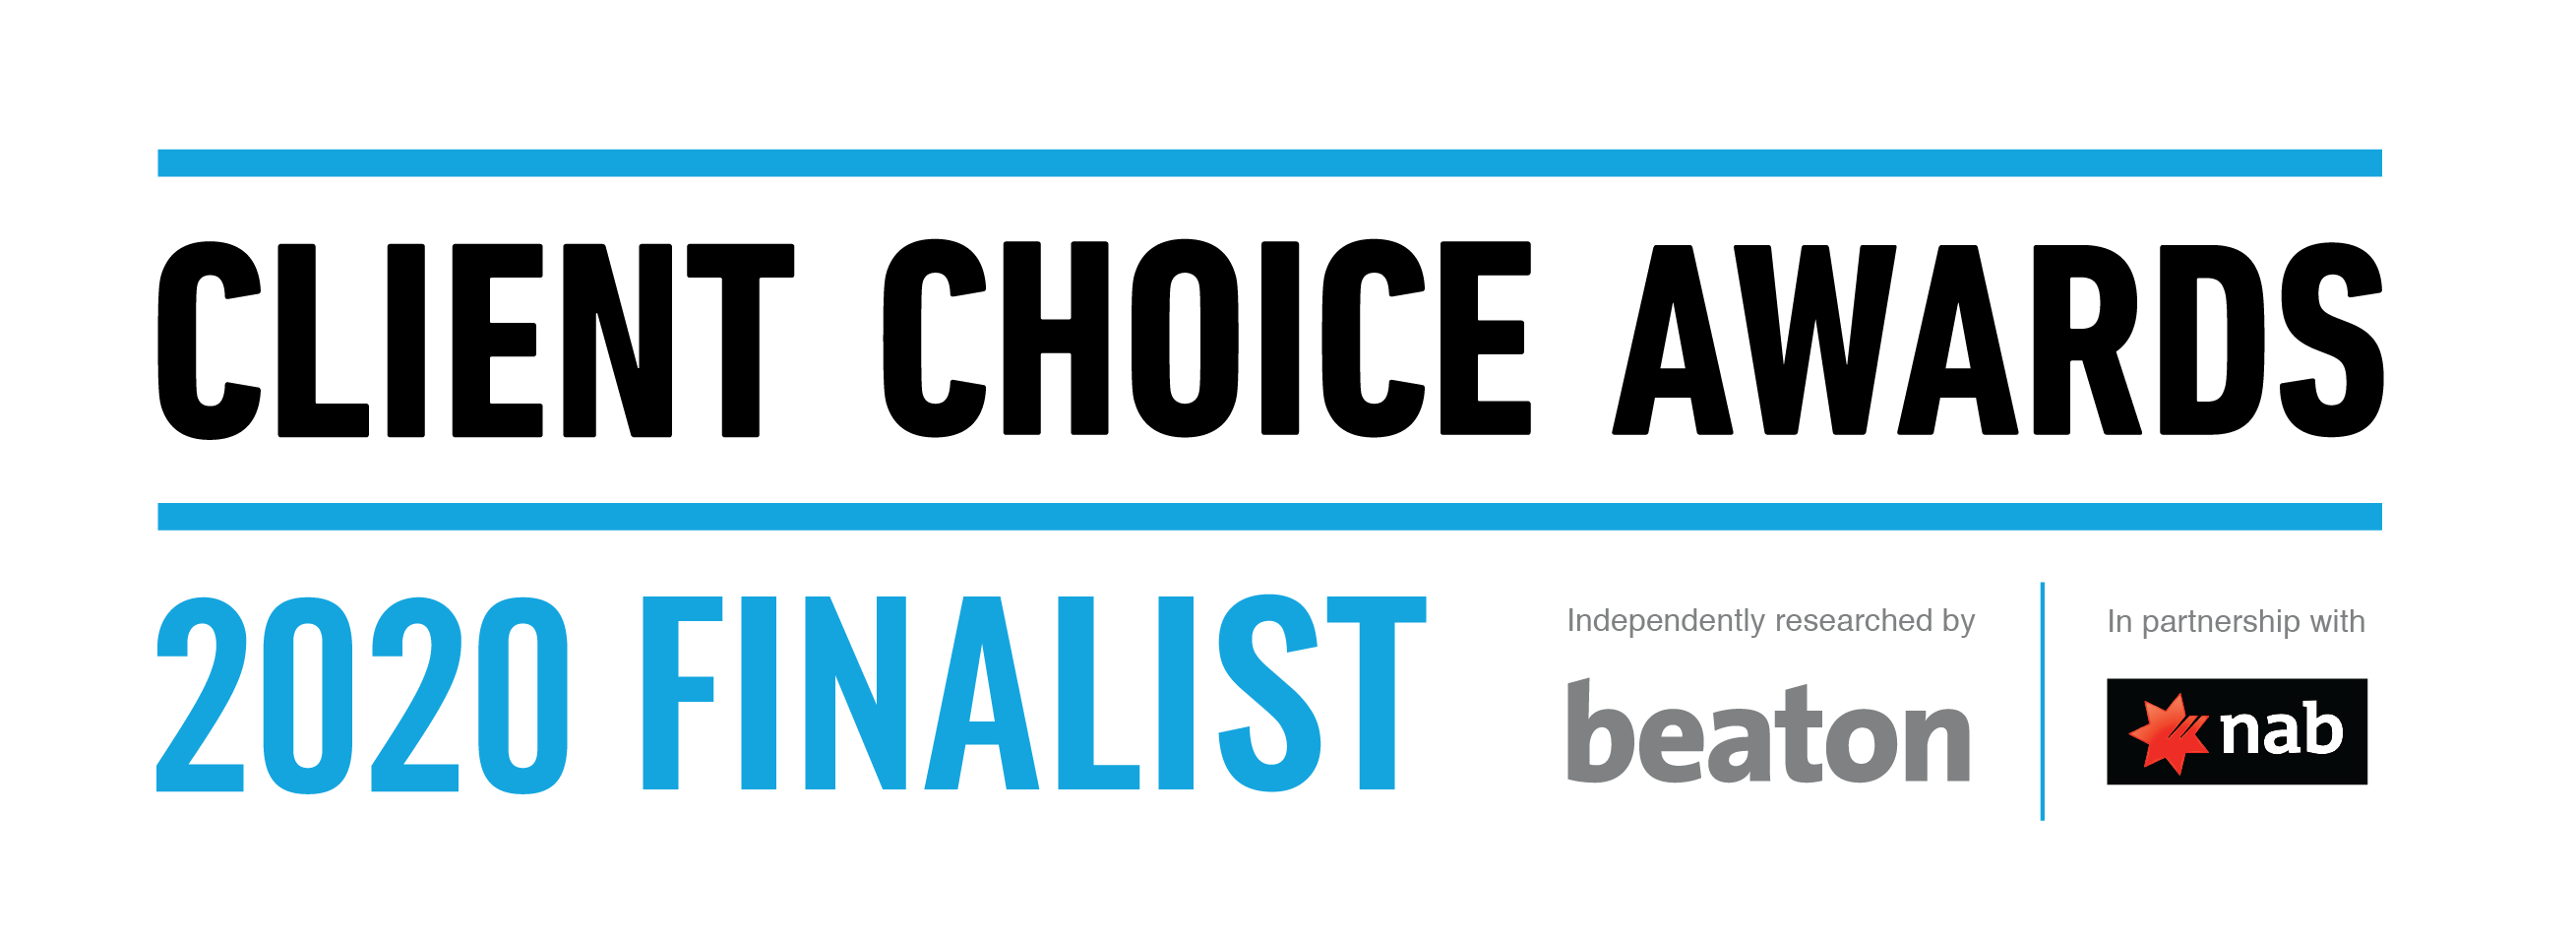 NAB Client Choice Awards 2020 Finalist